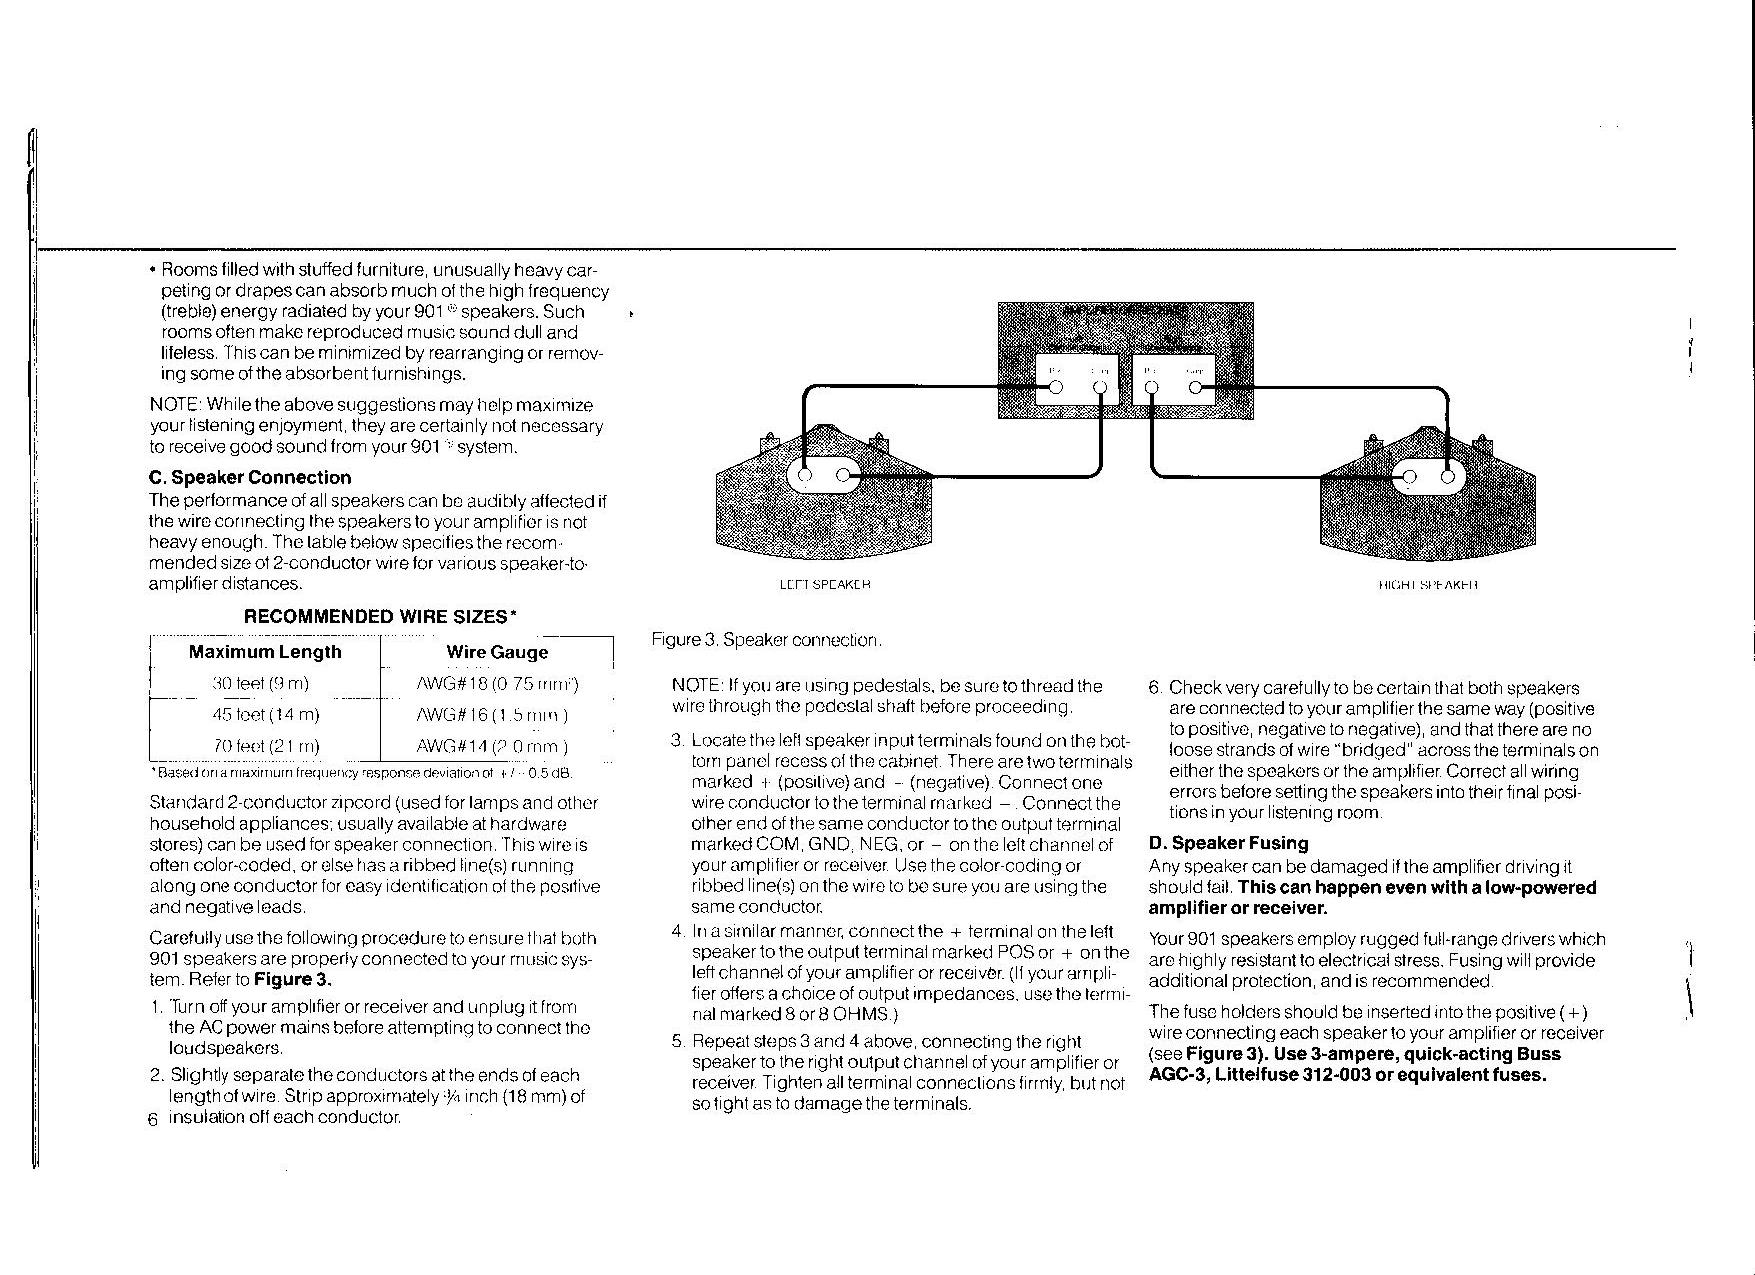 Bose 901 Wiring Diagram | car block wiring diagram  Bose Wiring Diagram on bose 901 warranty, bose 901 cabinet, 1948 chevy ignition switch wire diagram, volume control wiring diagram, bose 901 wire hook up, 1948 chevy truck wiring diagram, 46 chevy wiring diagram, 75 chevy truck wiring diagram, bose 901 exploded view, gmc truck wiring diagram, series speaker wiring diagram, bose 901 manual, l pad volume control diagram, home theater subwoofer wiring diagram, speakers in series diagram, bose 901 brochure,